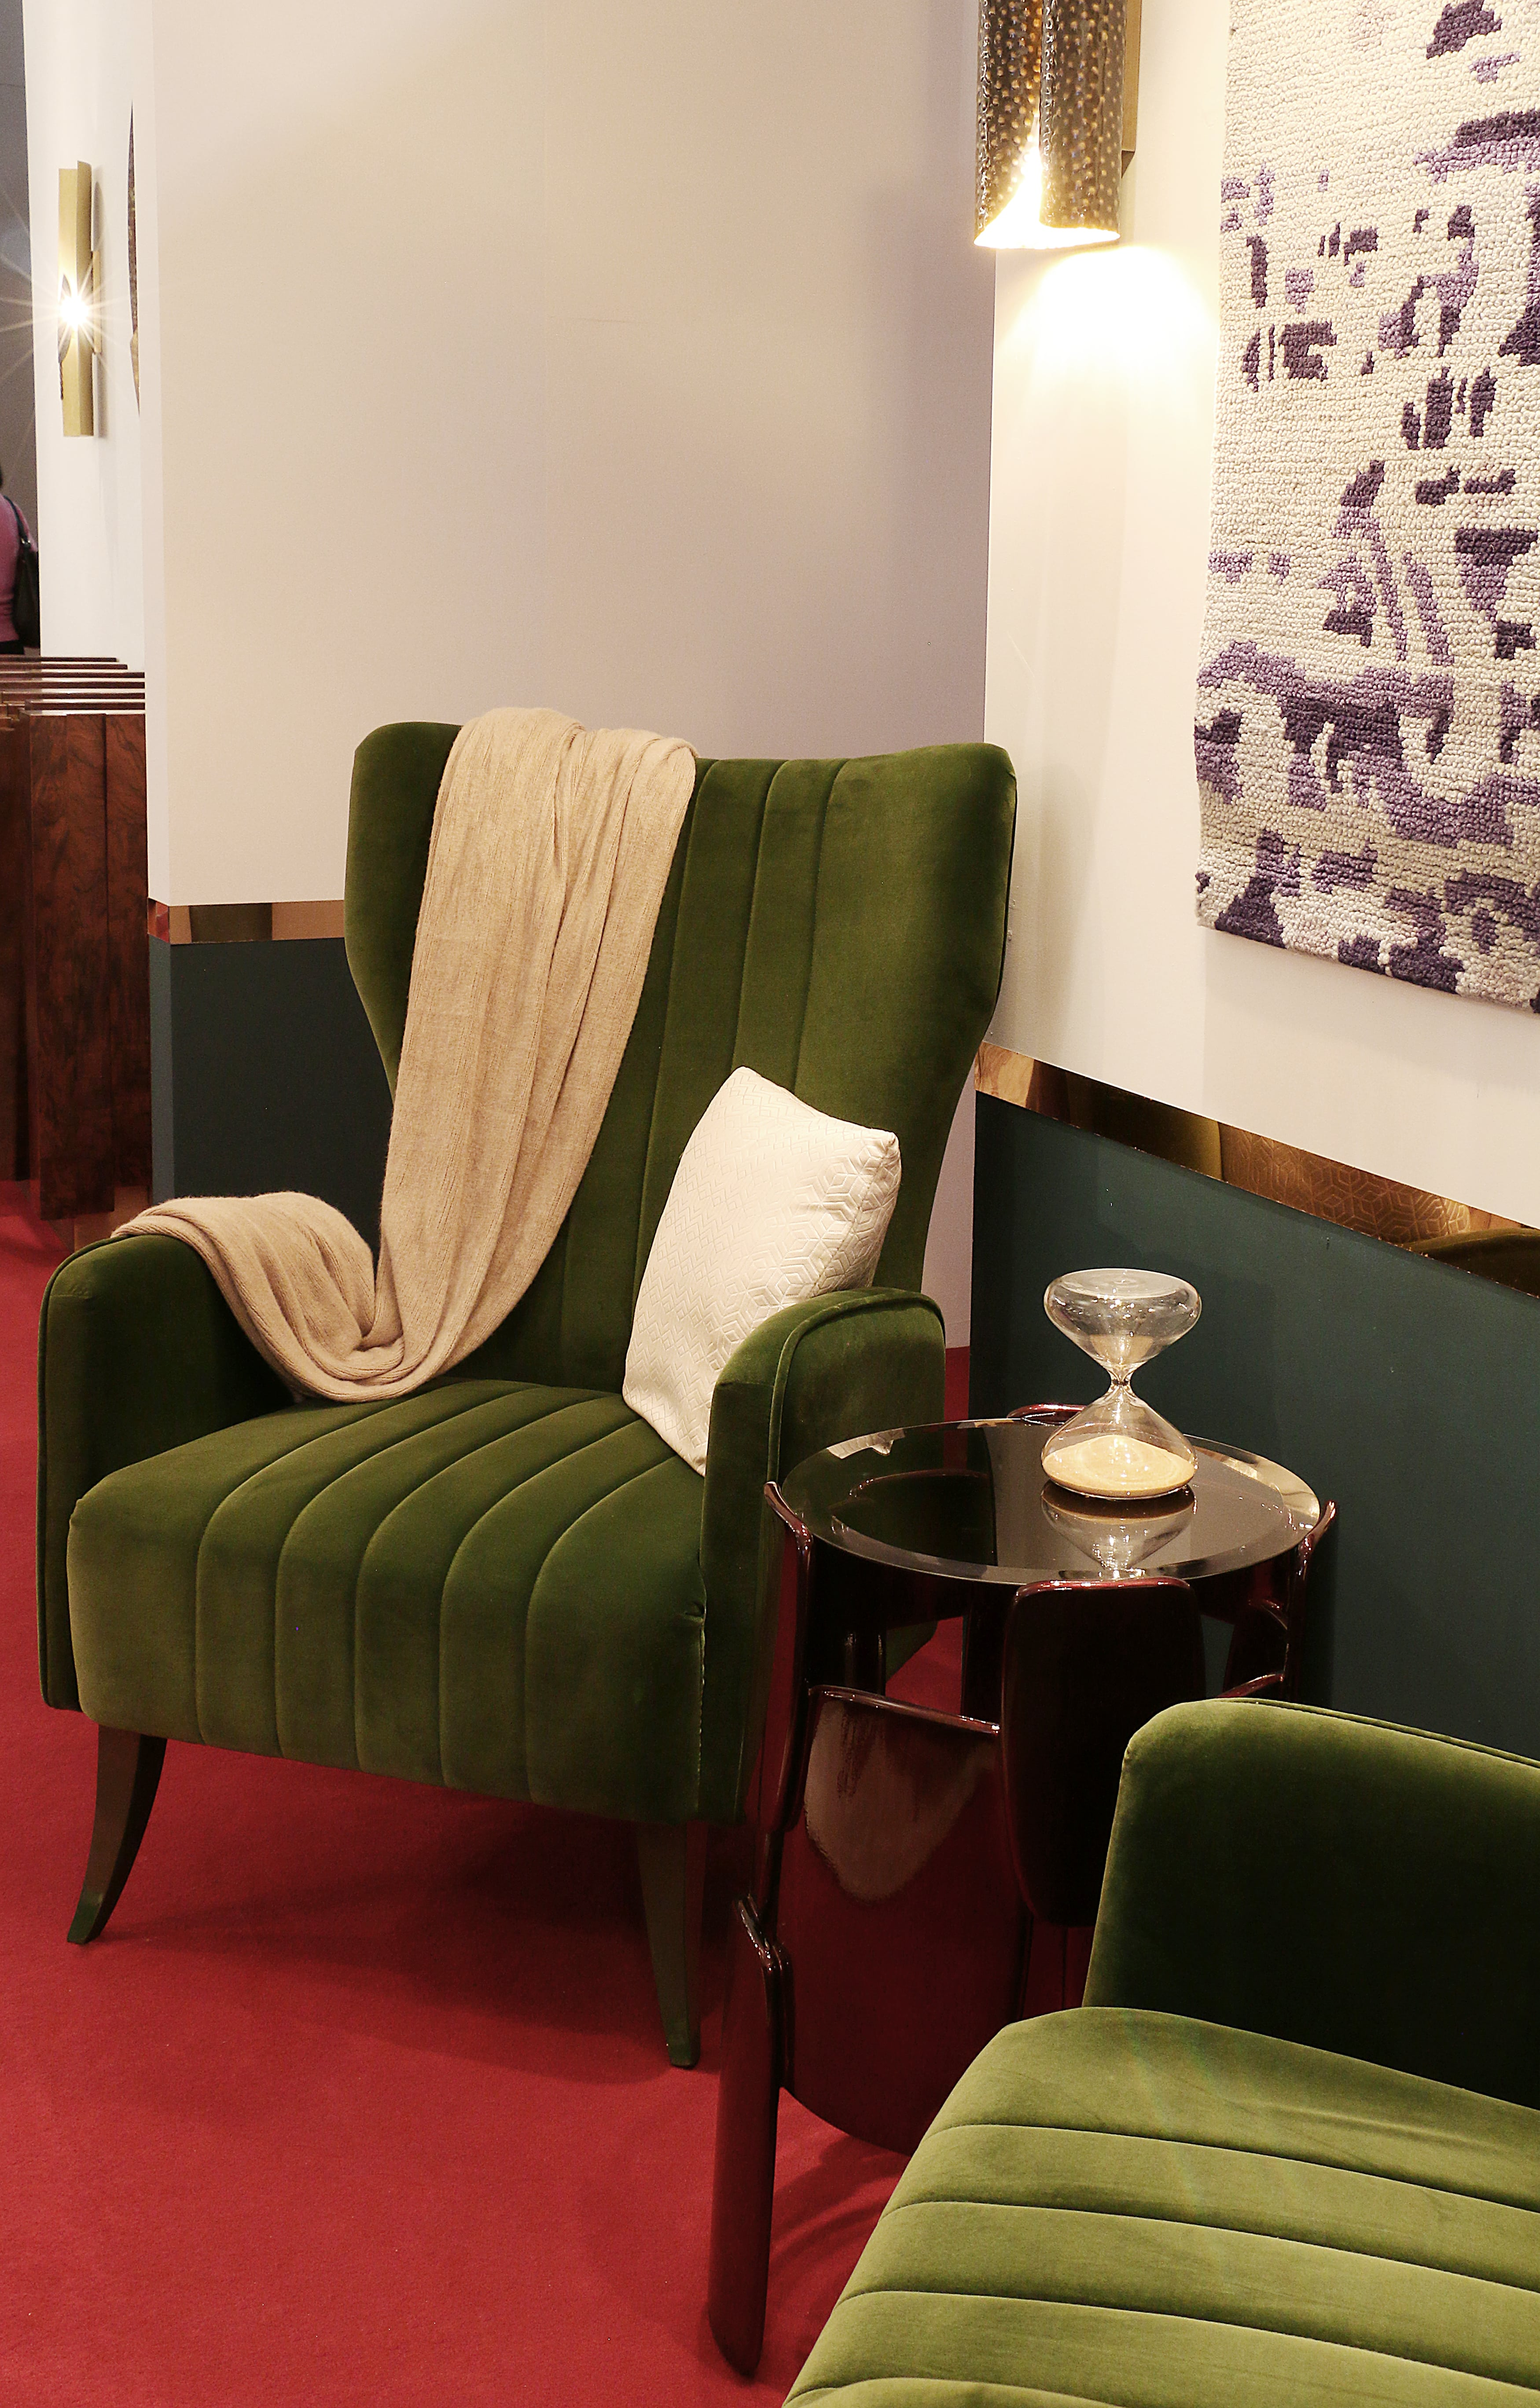 Modern Chairs at Salone del Mobile You Will Wish To Have salone del mobile 2017 Modern Chairs at Salone del Mobile 2017 You Will Wish To Have Modern Chairs at Salone del Mobile 2017 You Will Wish To Have 2 min